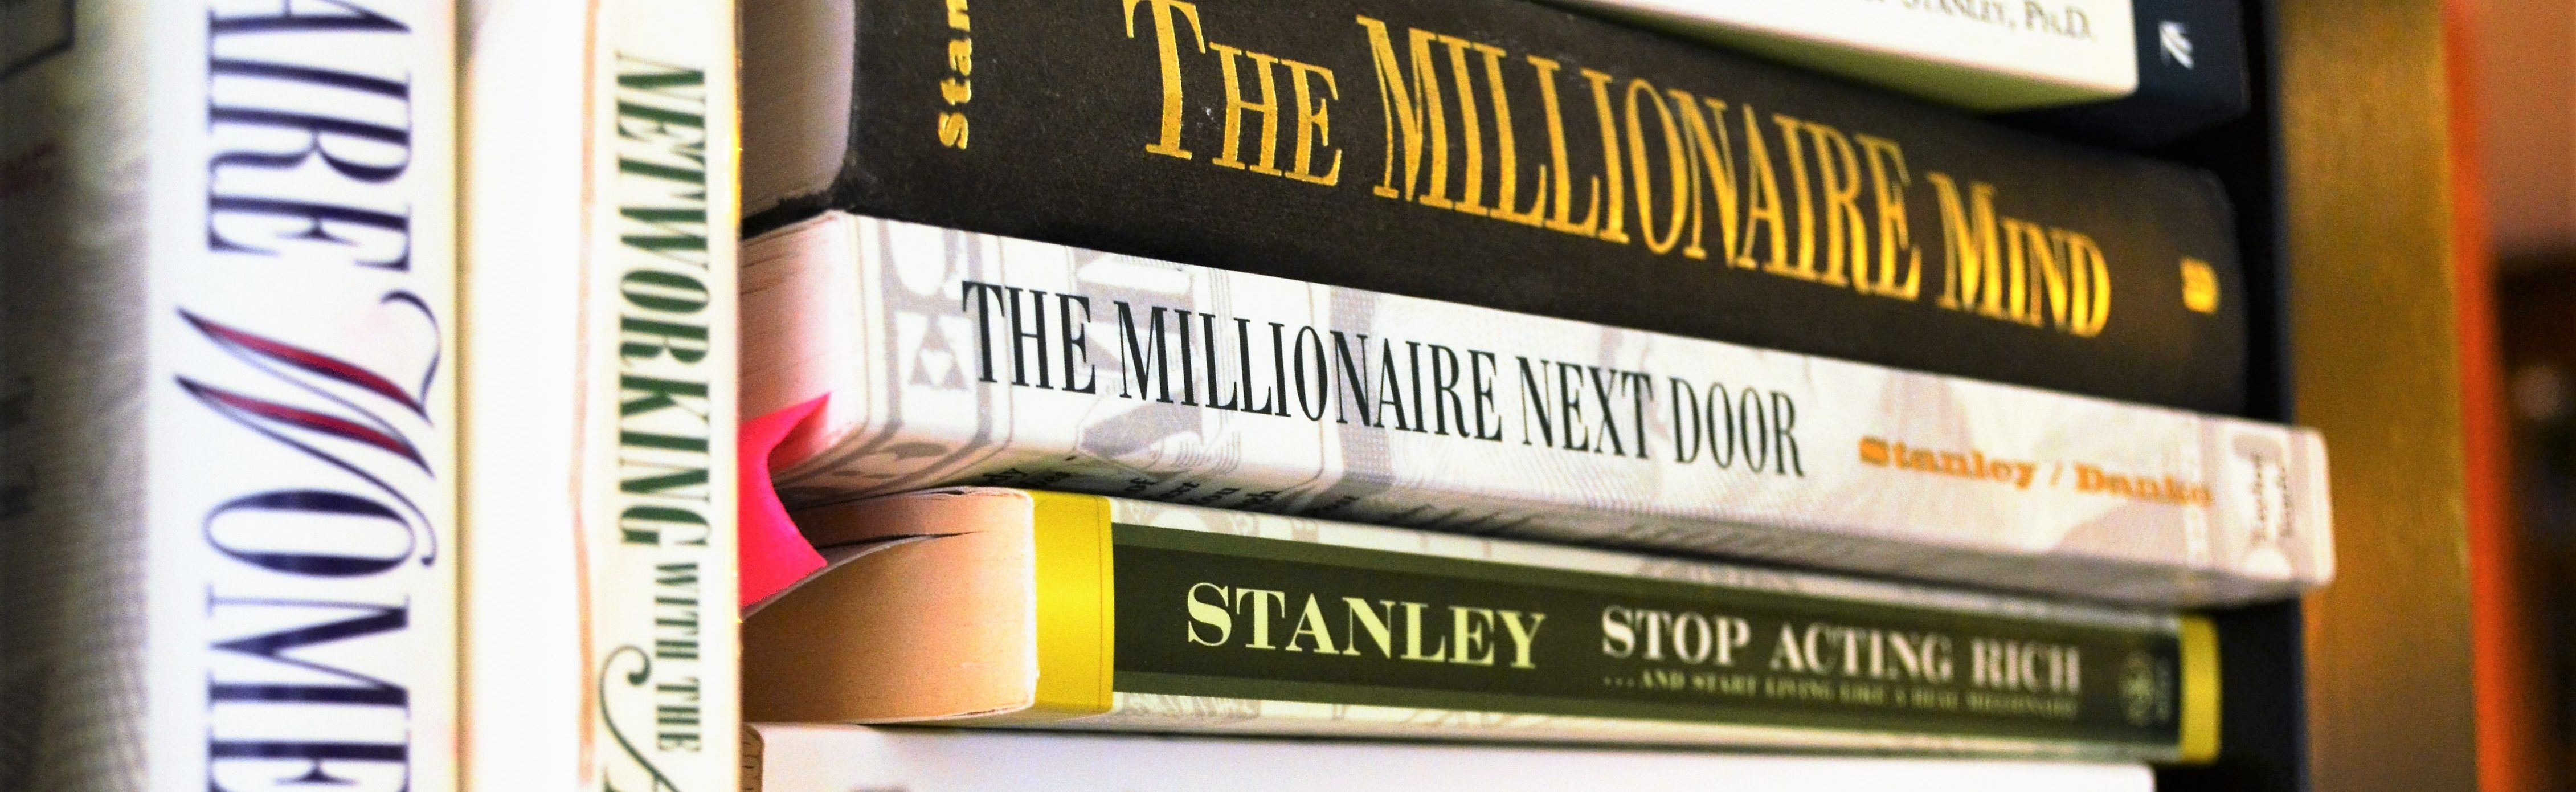 Research and data from The Millionaire Next Door